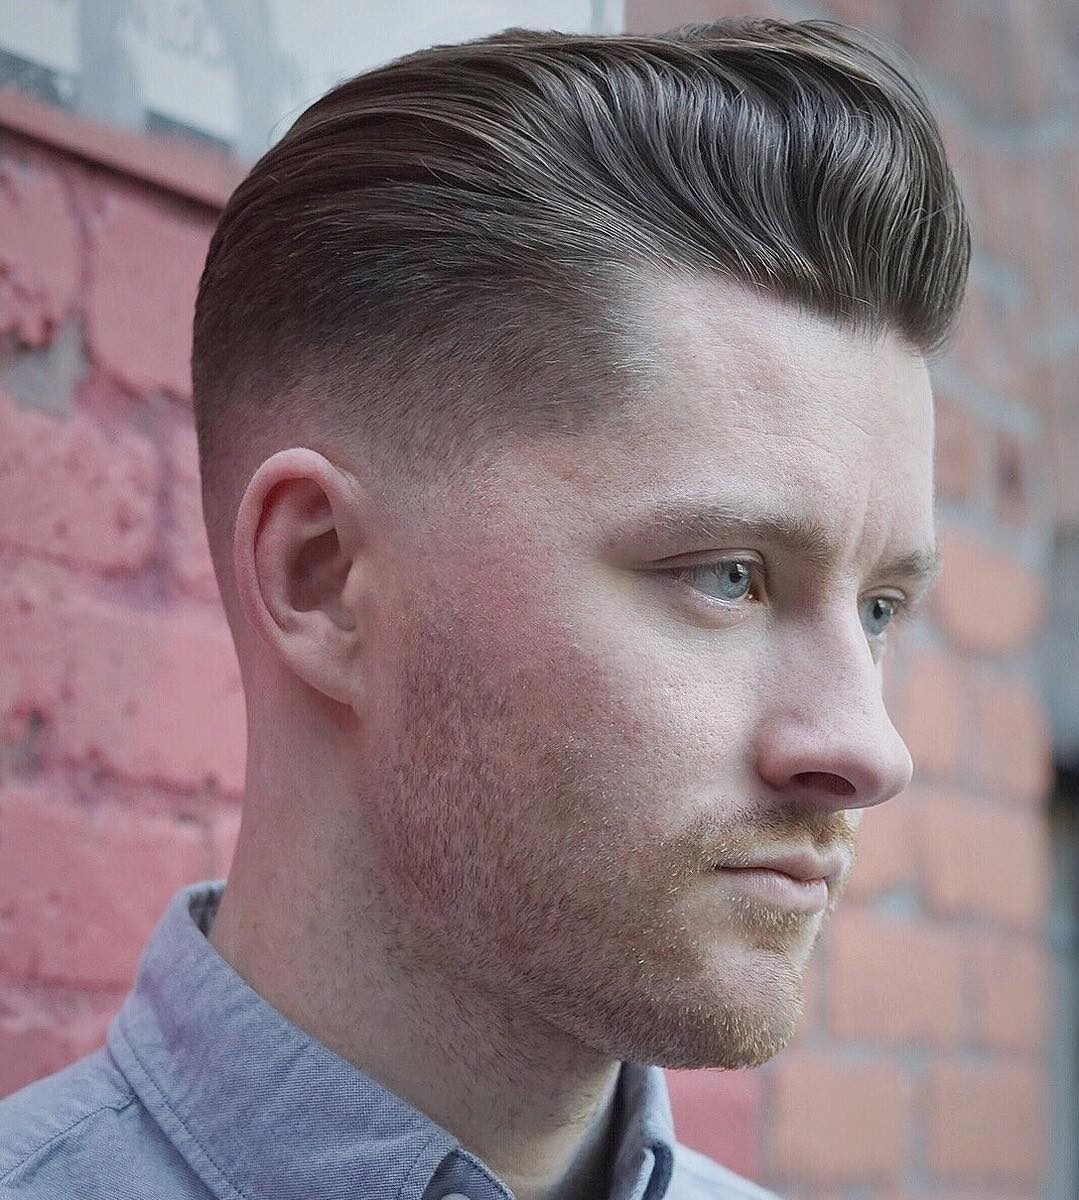 Pompadour hairstyle with a low fade